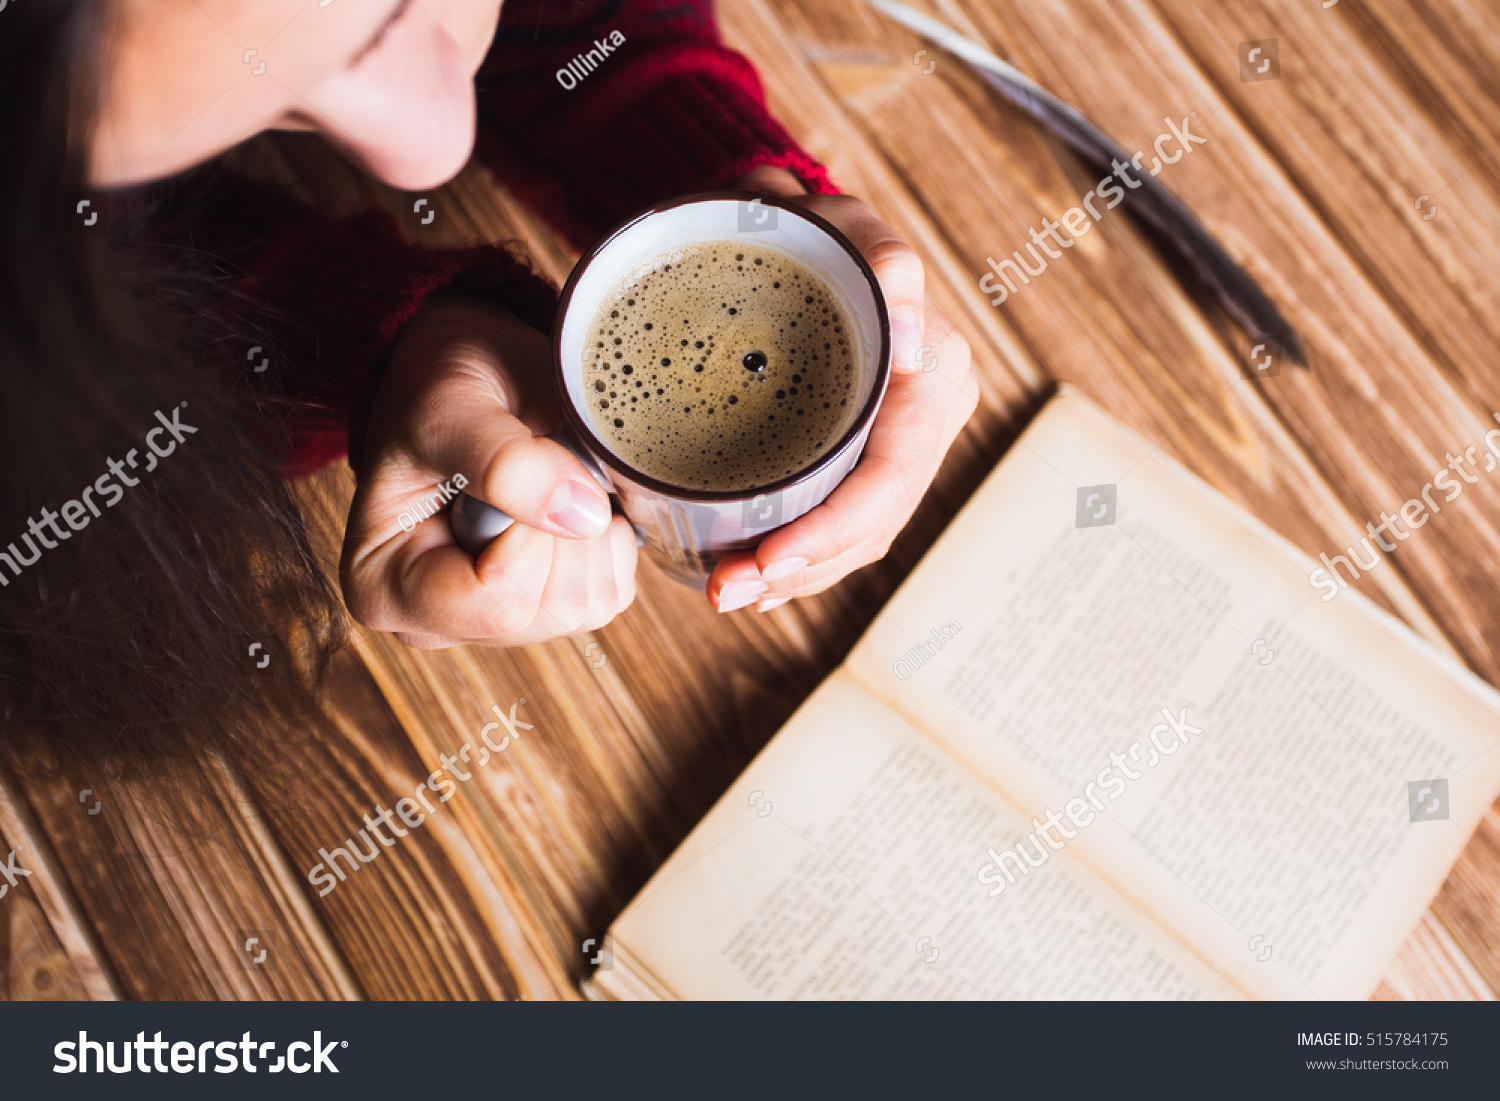 Young Woman Red Sweater Holding Cup Stock Photo 515784175 ...